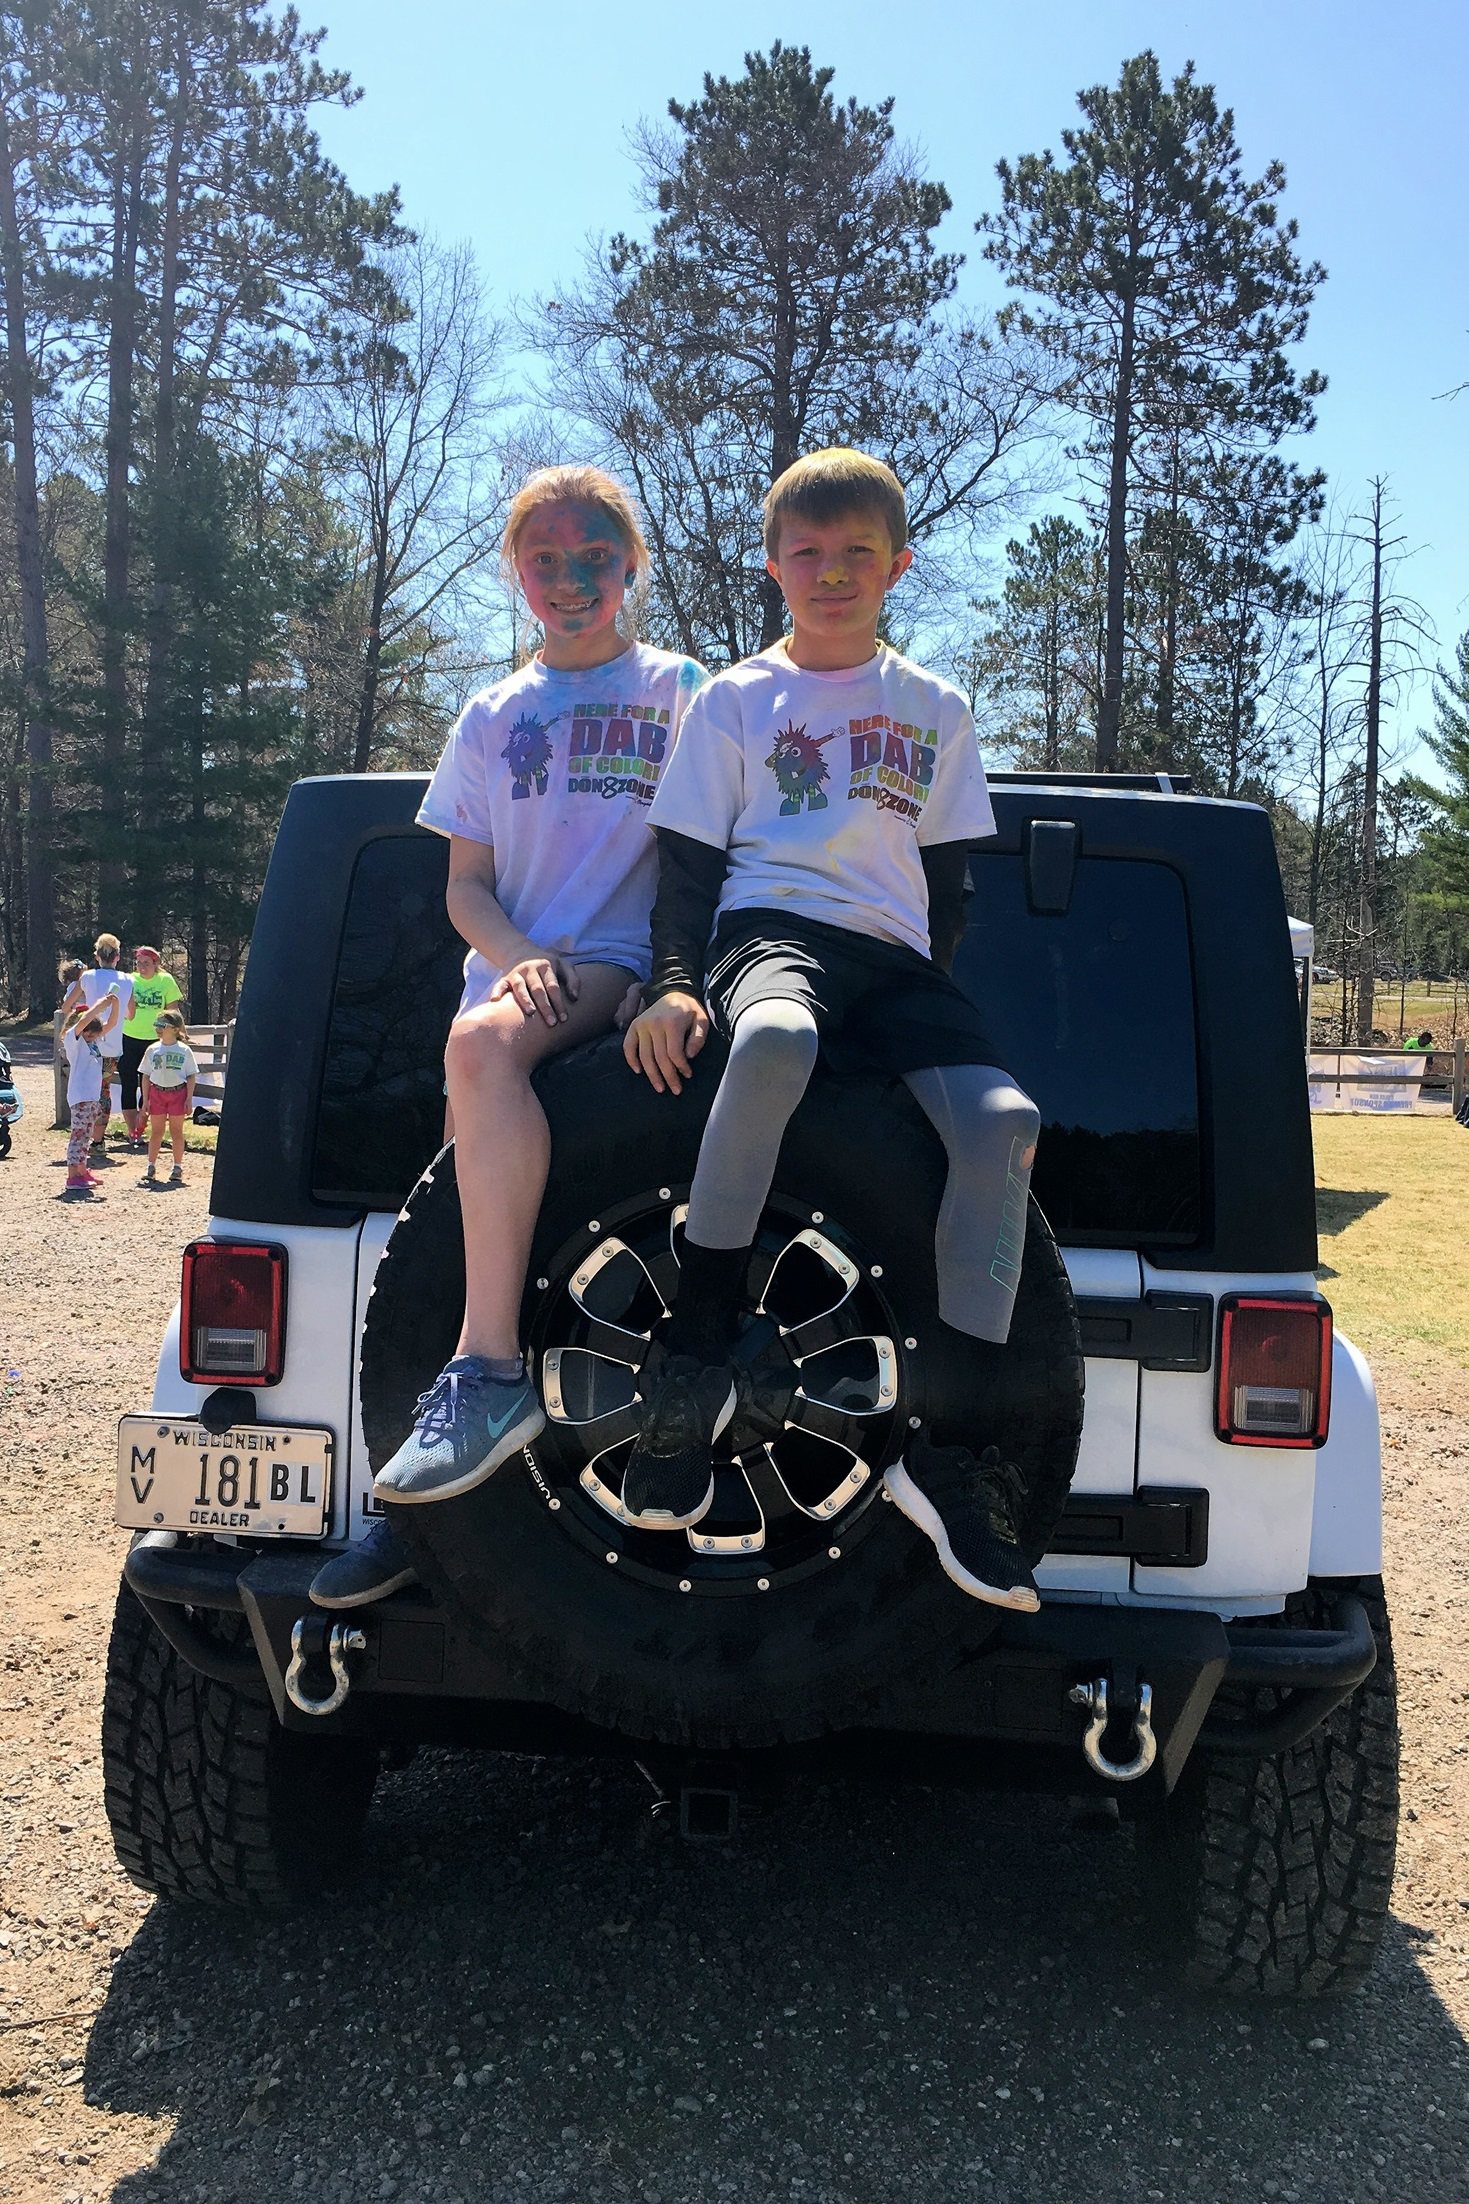 Landry and Barron had a great time at the Color Run in Minocqua. Kim Johnson photo